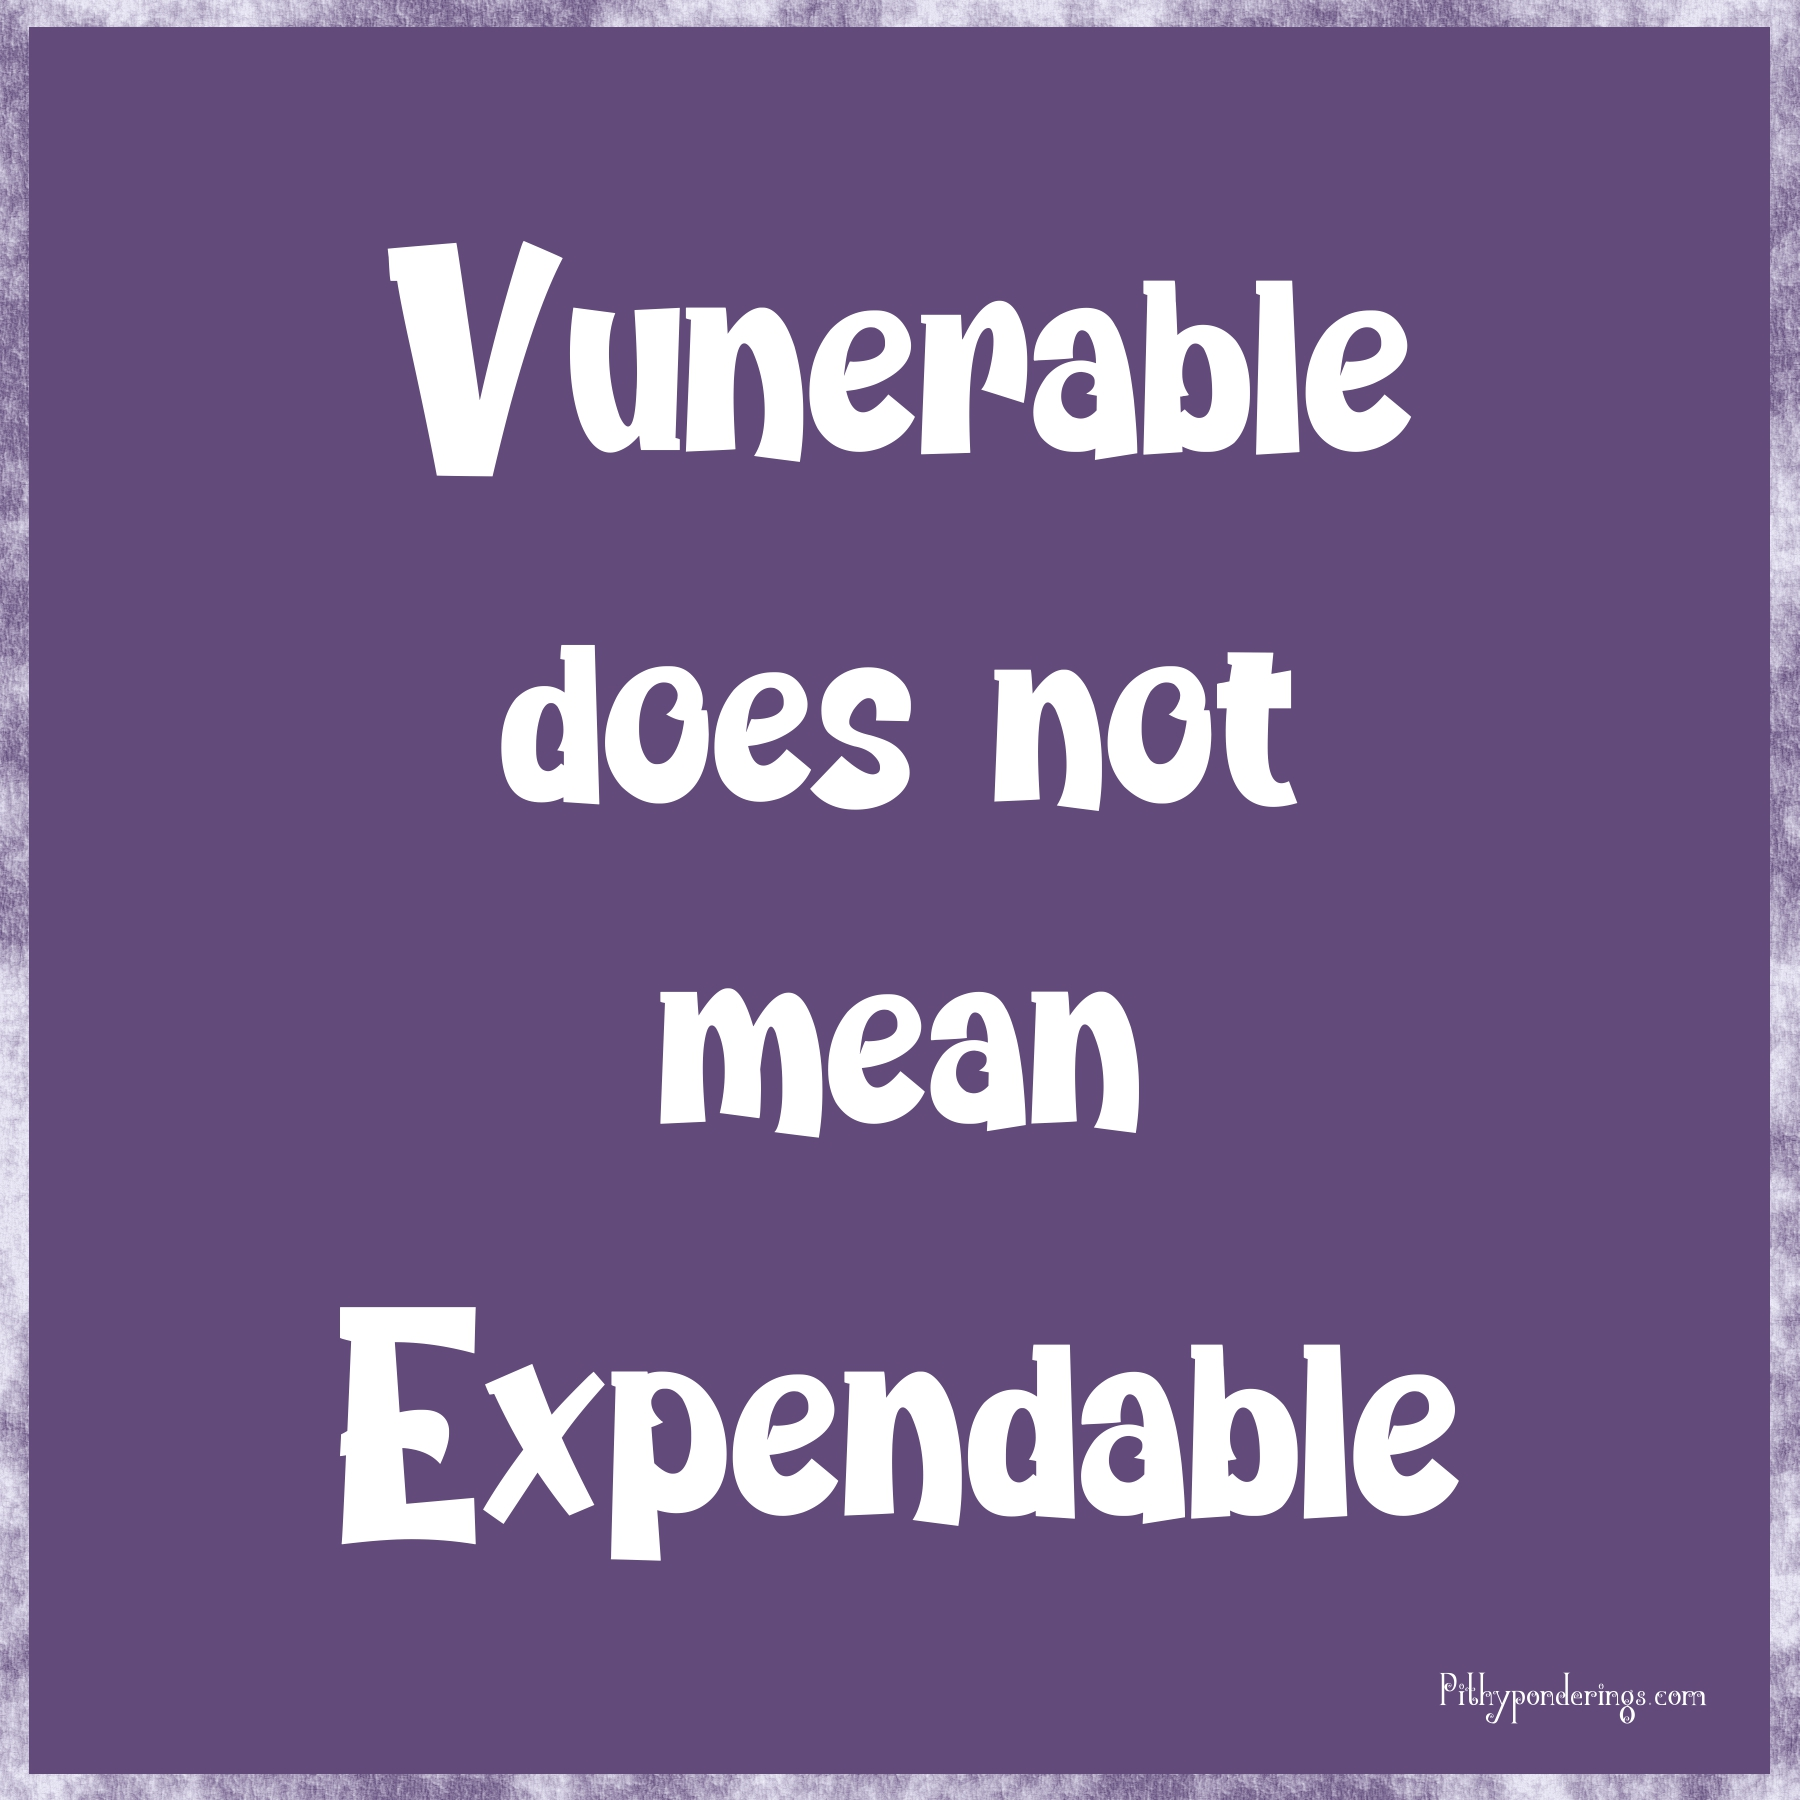 Vunerable not Expendable